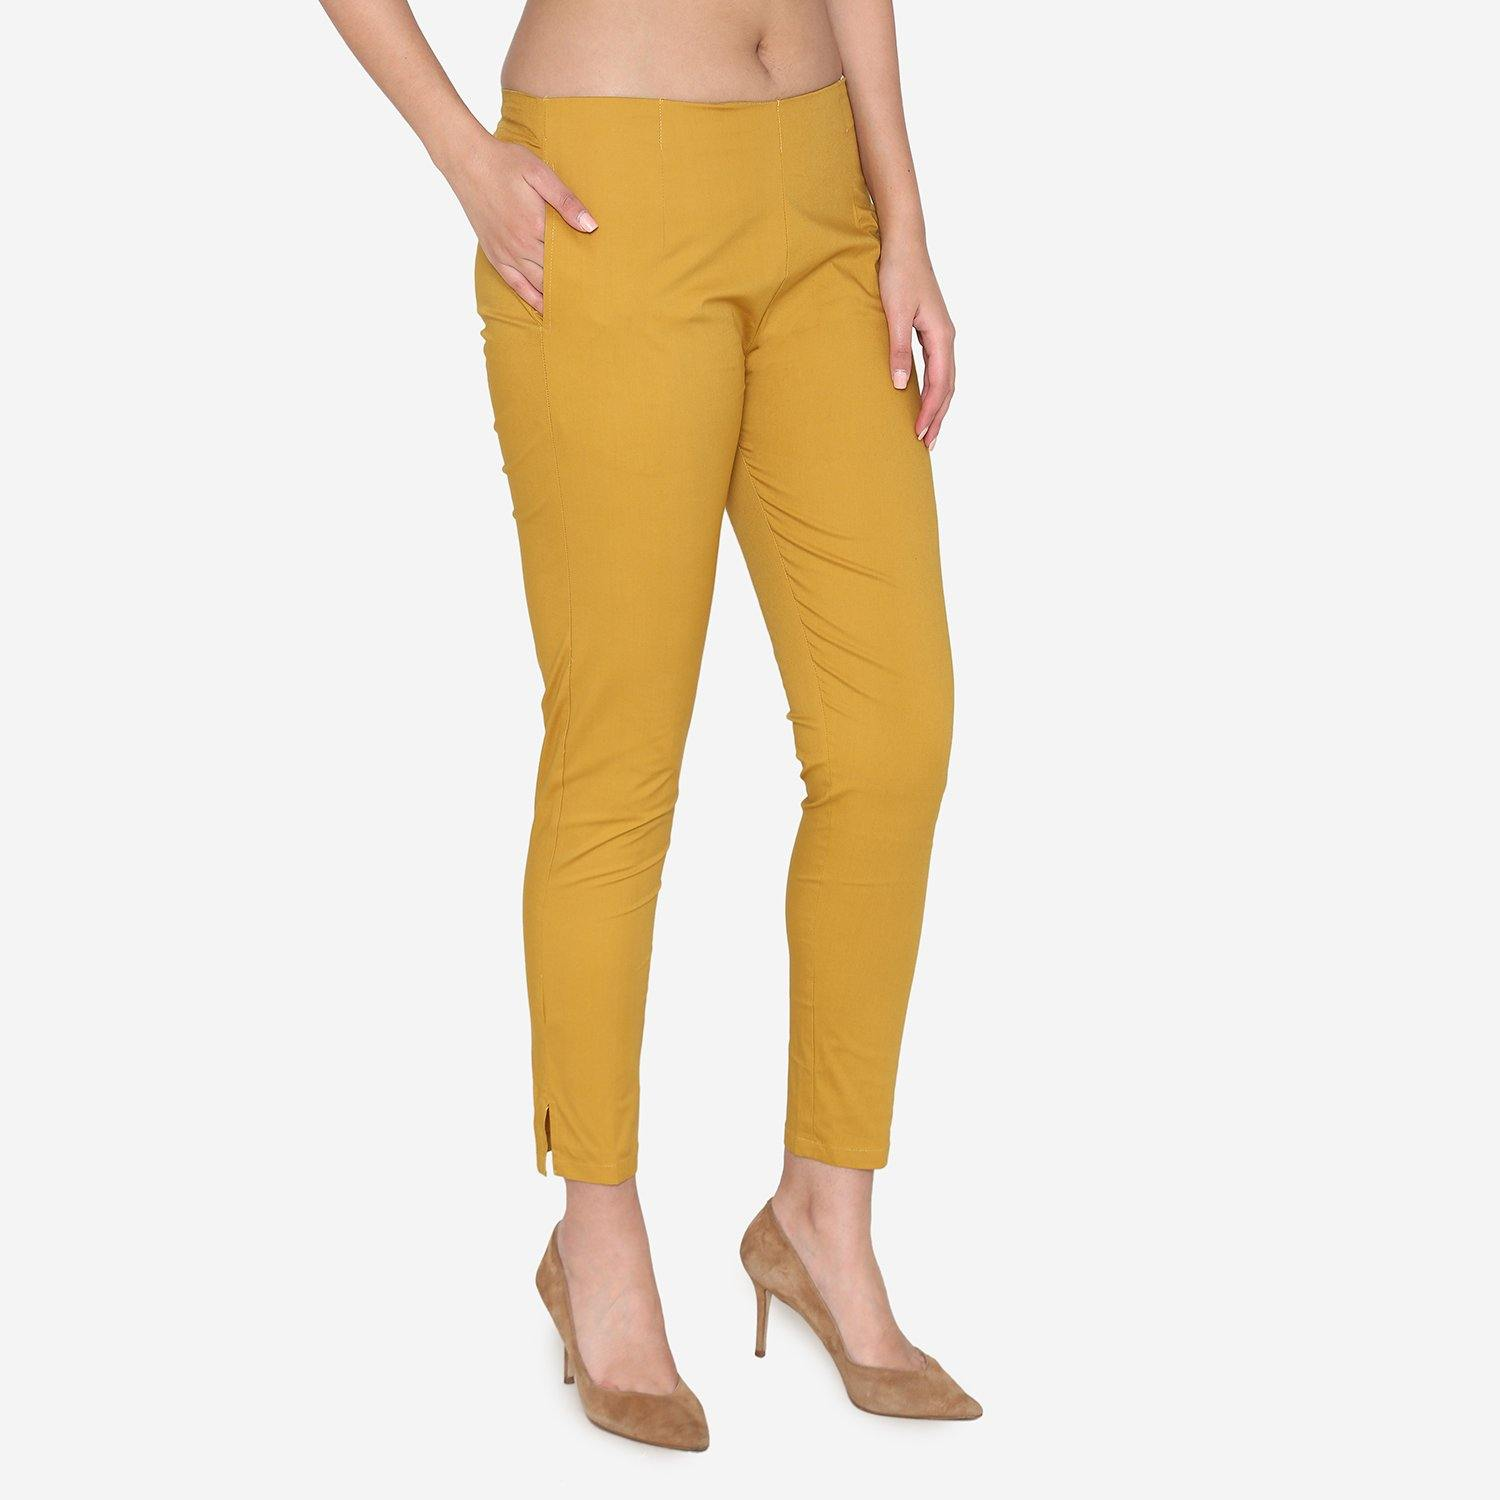 Vami Women's Cotton Formal Trousers- Golden